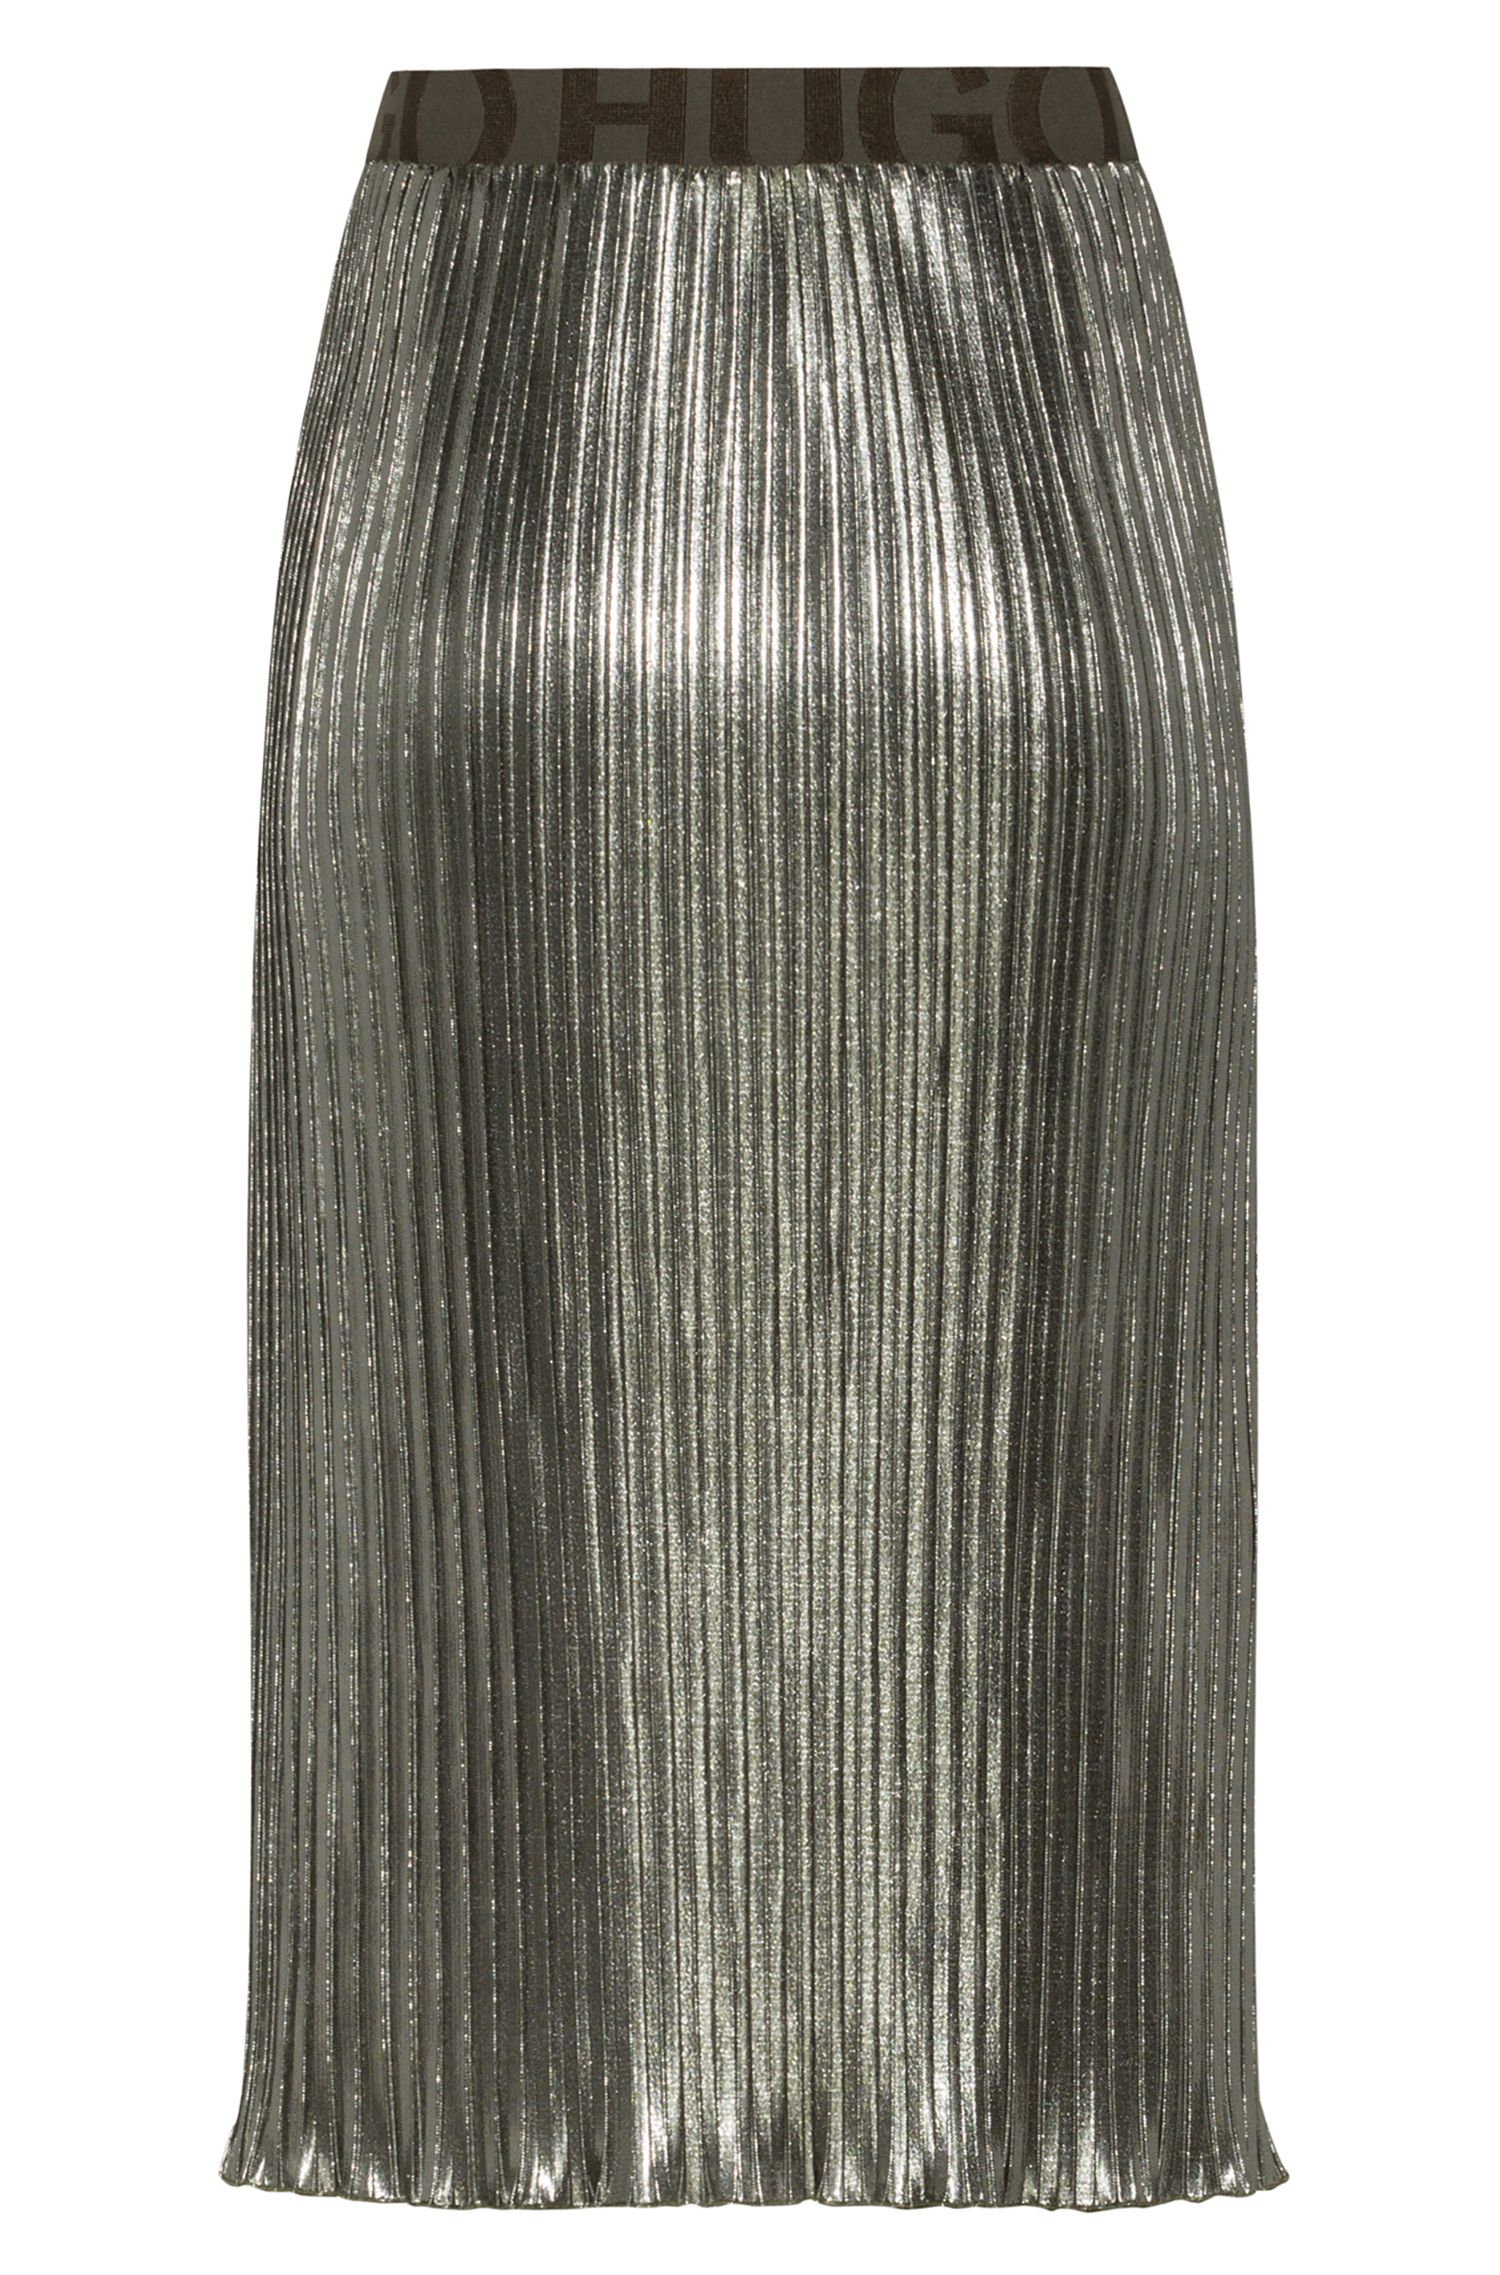 Plissé midi skirt in metallic jersey with logo waistband, Green